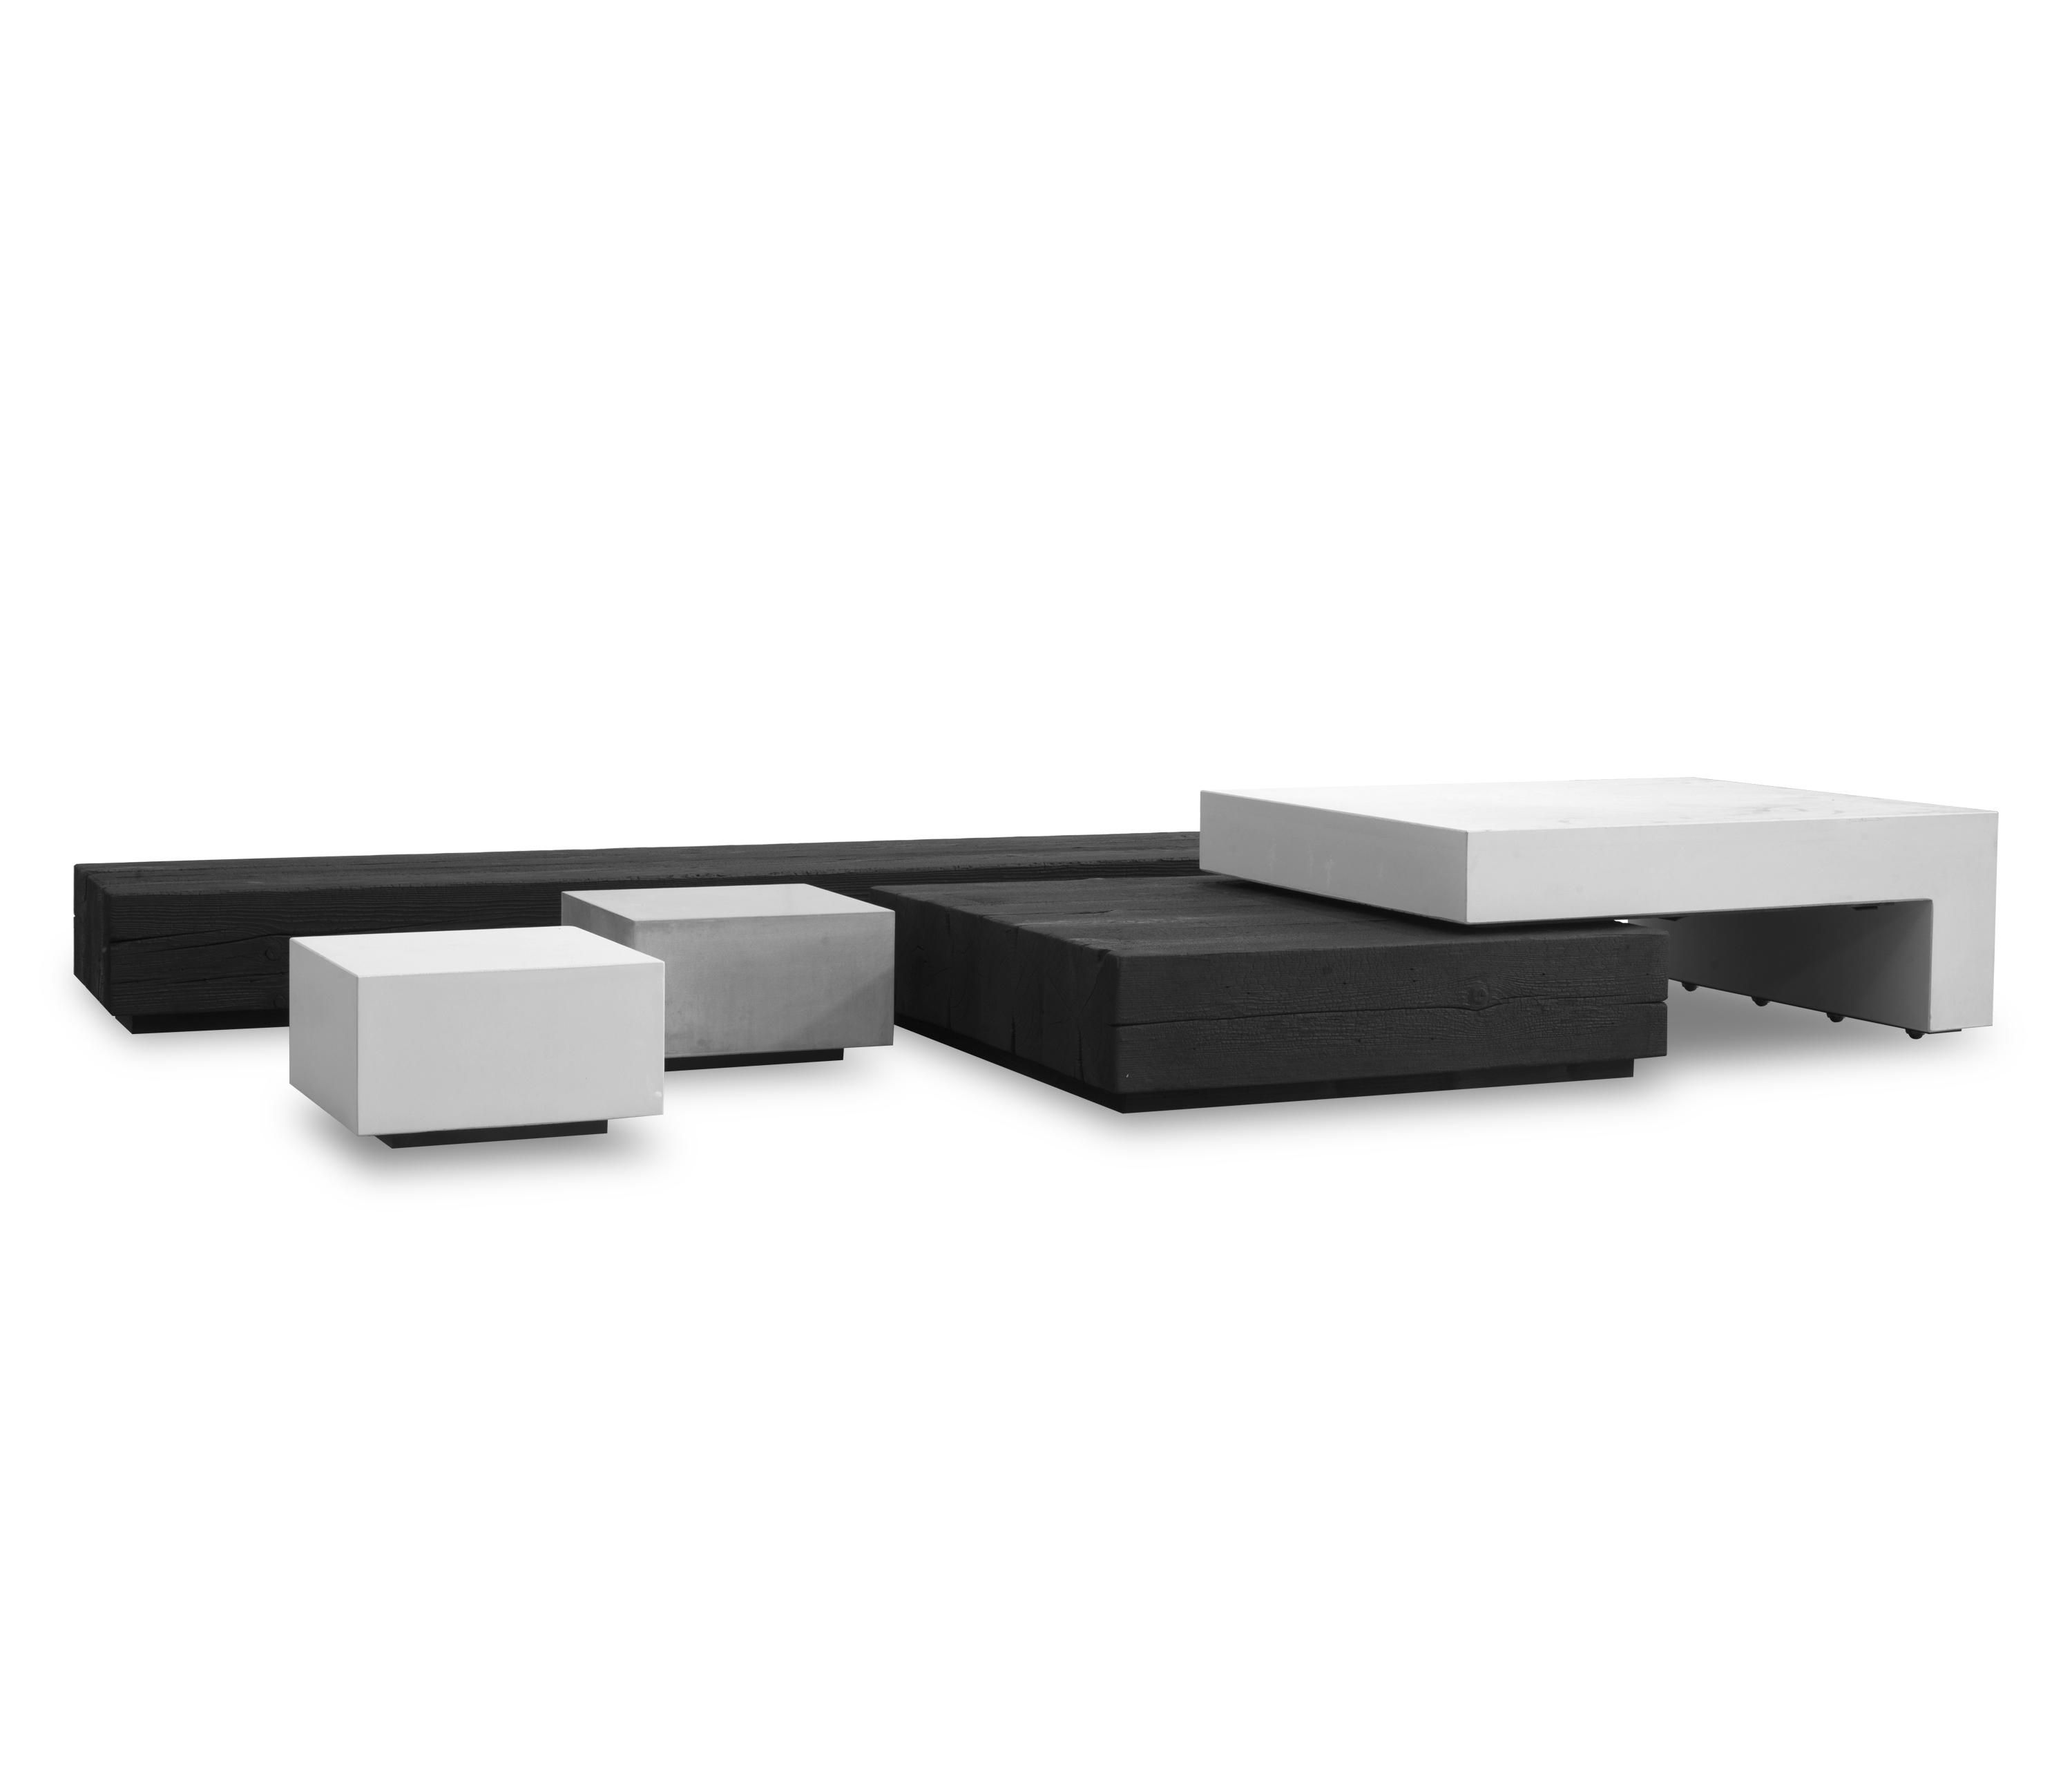 jenga small table  designer lounge tables from baxter ✓ all  - jenga small table  designer lounge tables from baxter ✓ all information ✓highresolution